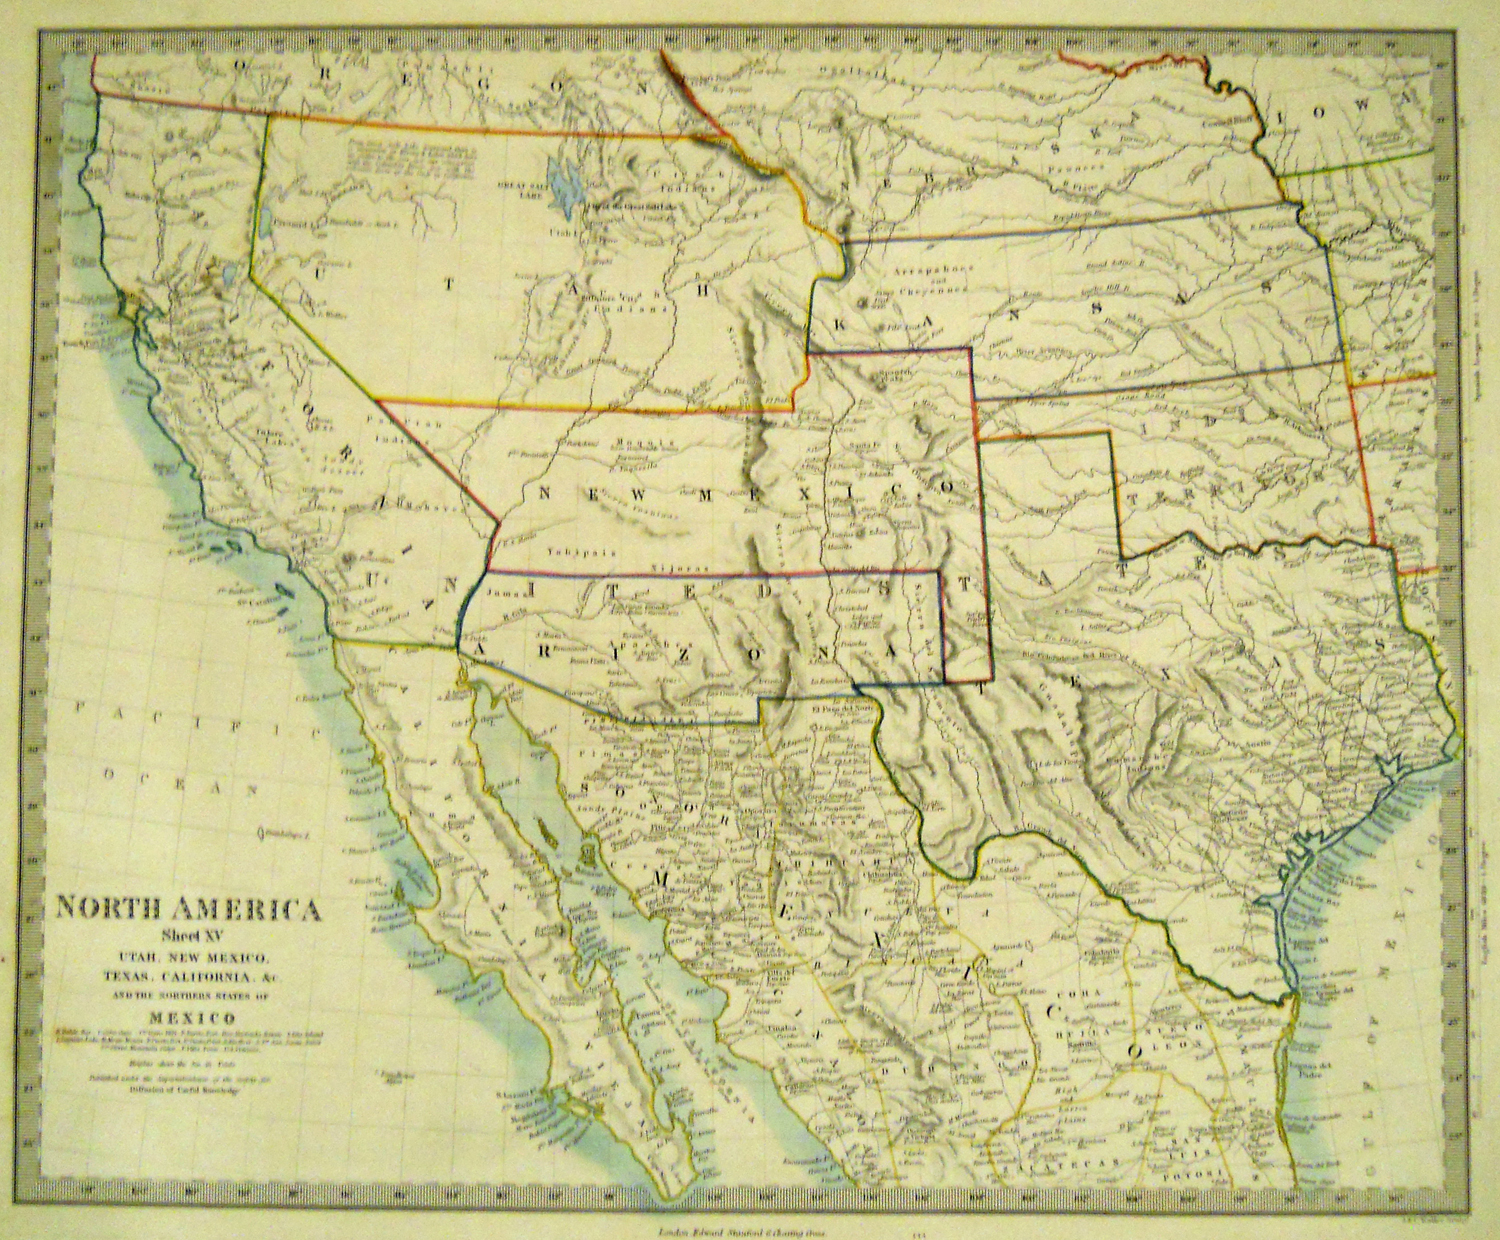 Southwest America Map.Washington County Maps And Charts